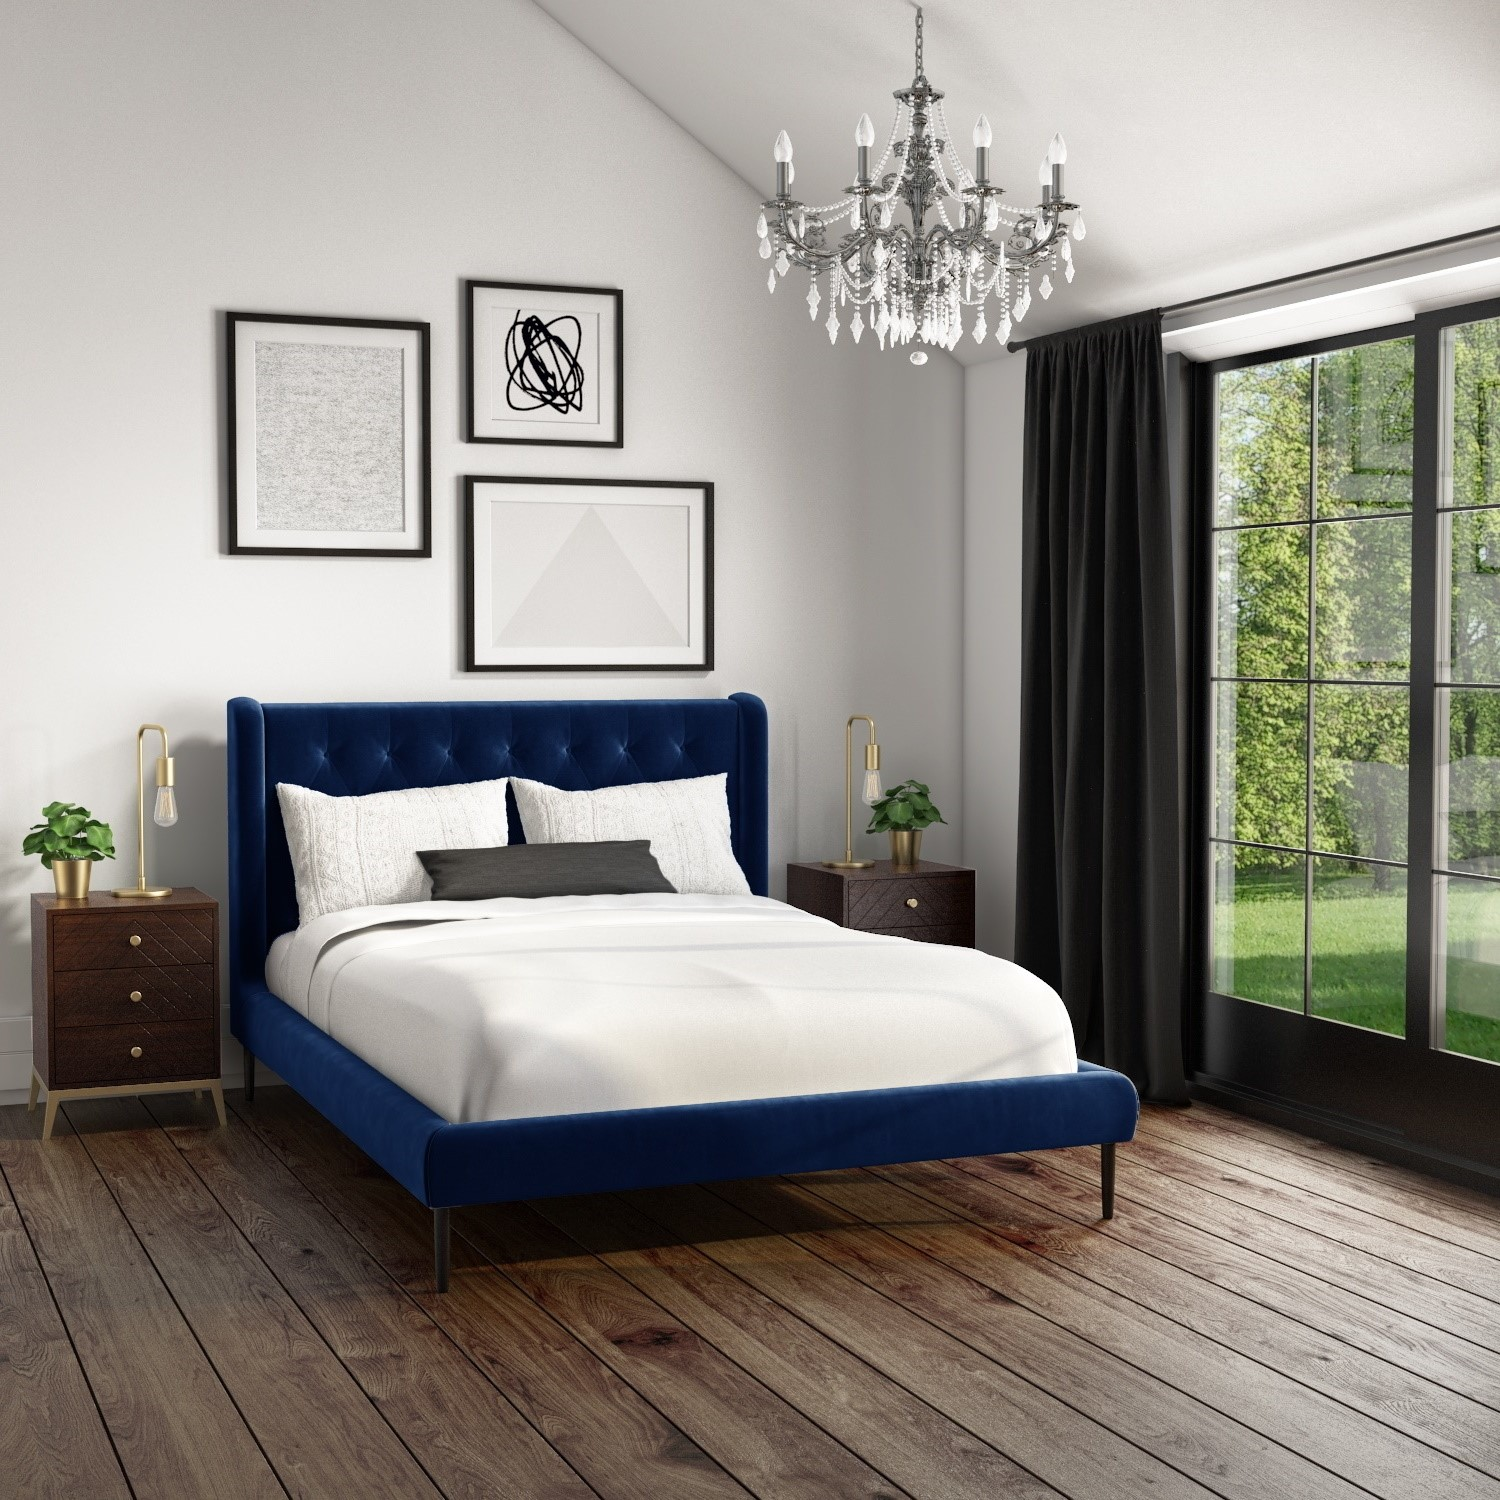 amara king size bed frame in navy blue velvet with quilted headboard